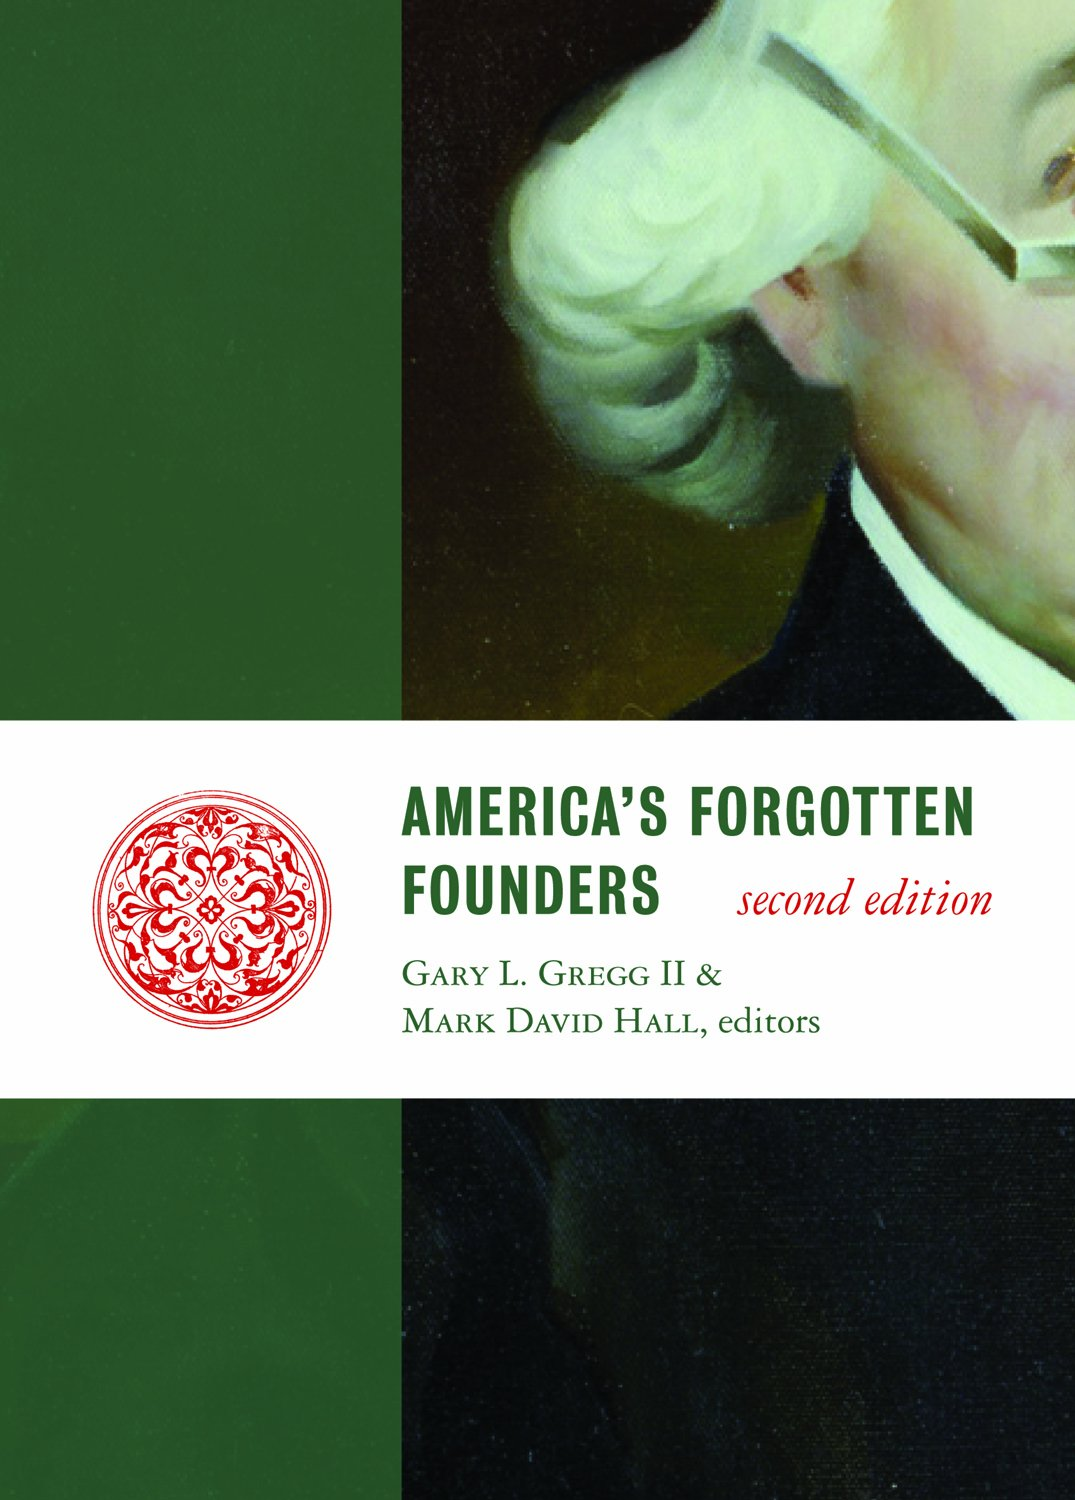 Download America's Forgotten Founders, second edition (Lives of the Founders) pdf epub